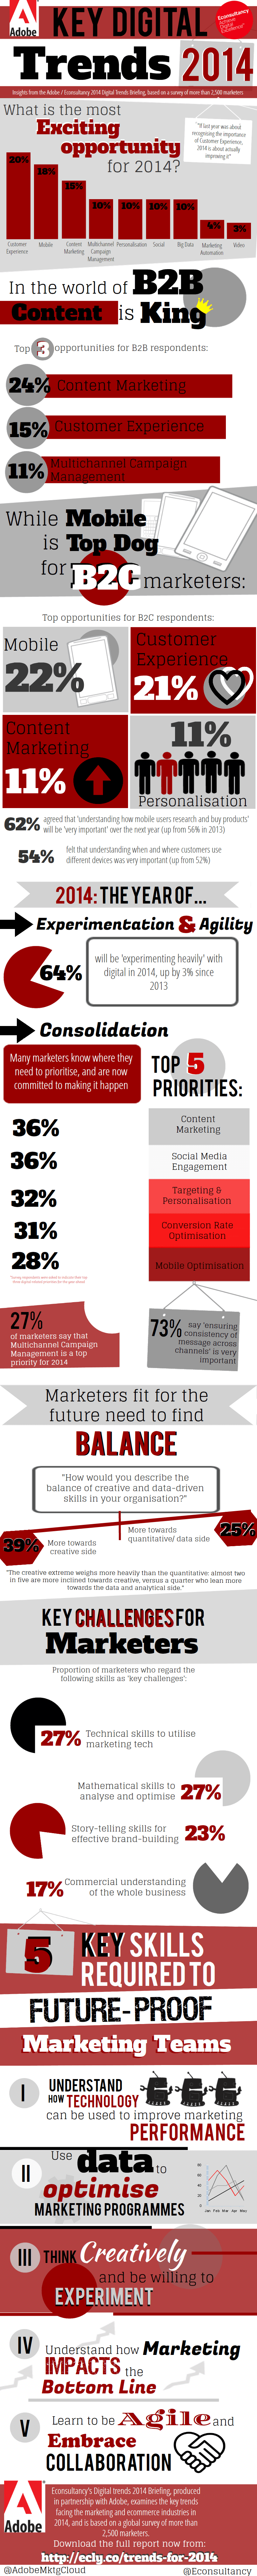 Most exciting opportunity for marketers [infographic]